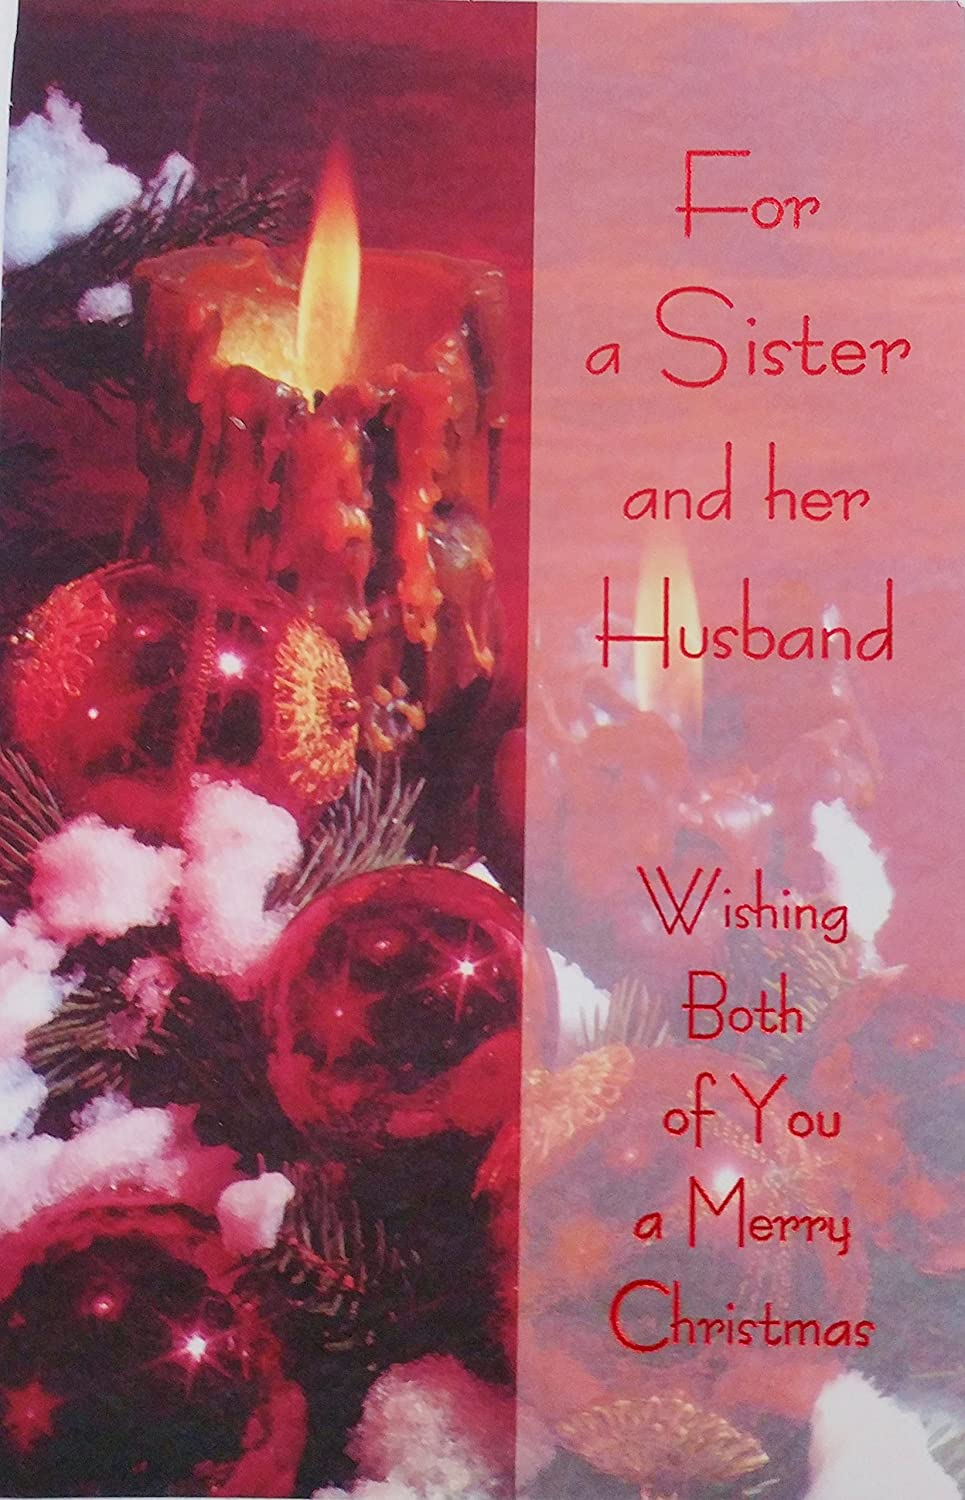 Amazon.com : For a Sister and Her Husband - Wishing Both of You a ...